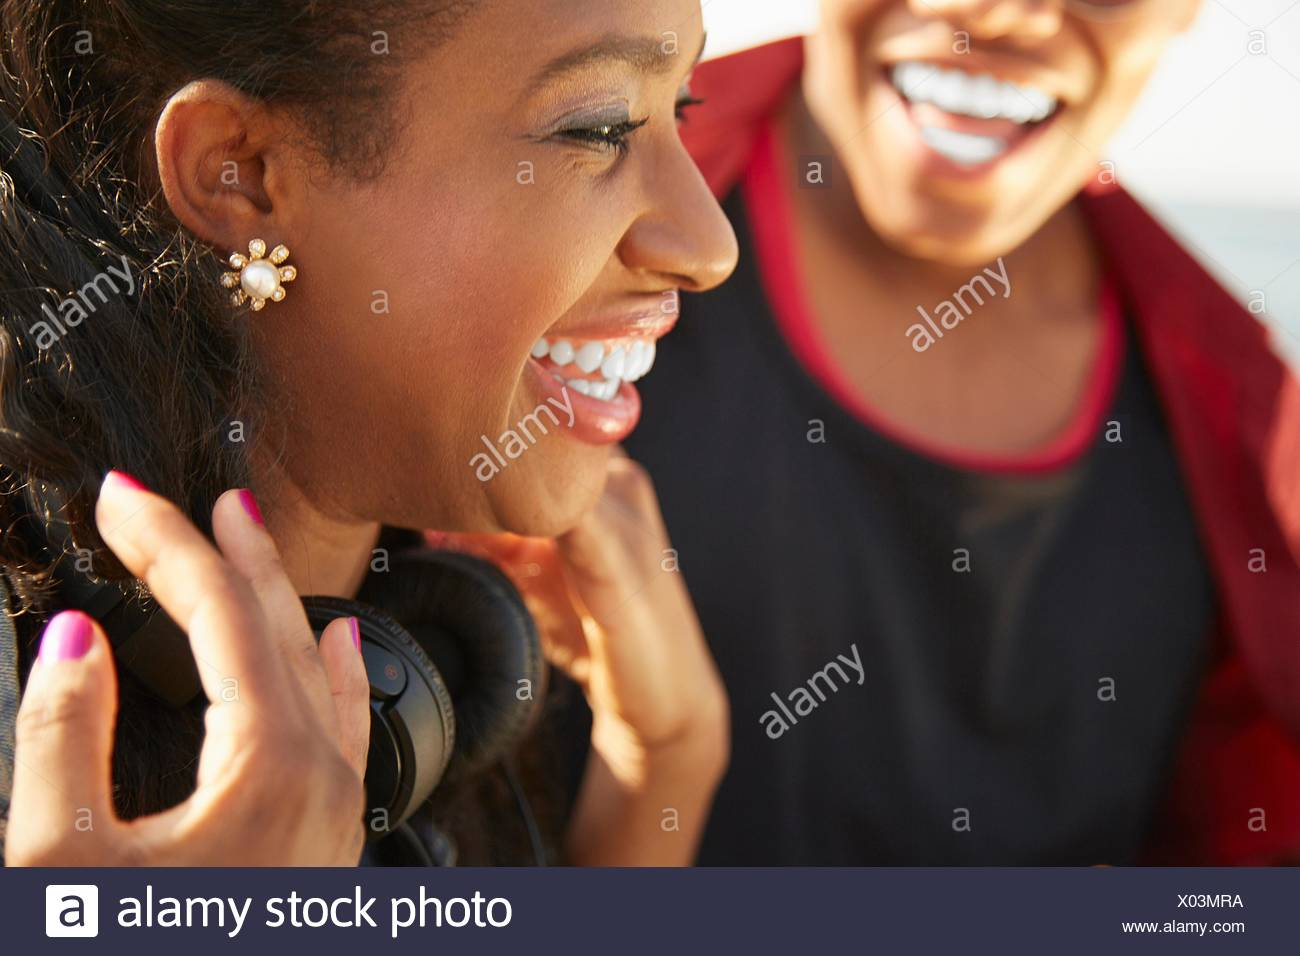 Close up profile of young woman smiling wearing headphones, people in background - Stock Image